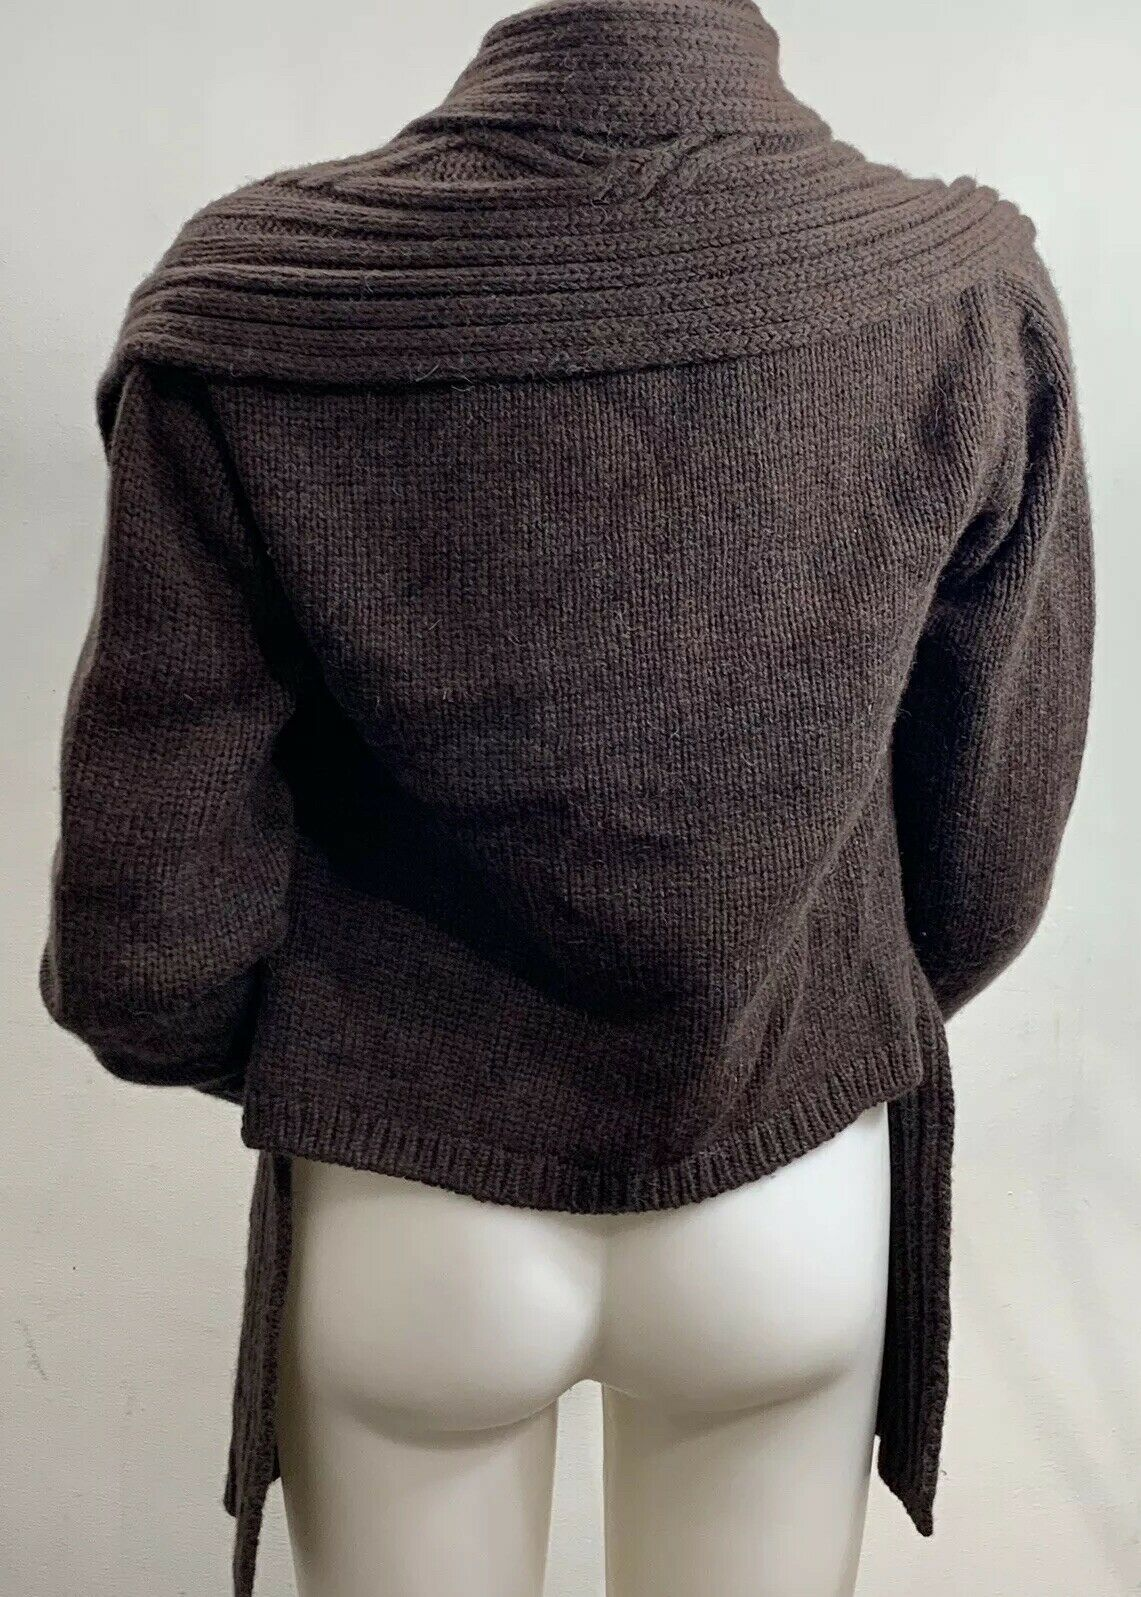 Inis Meain Wool Alpaca Cashmere Brown Knit Open F… - image 5